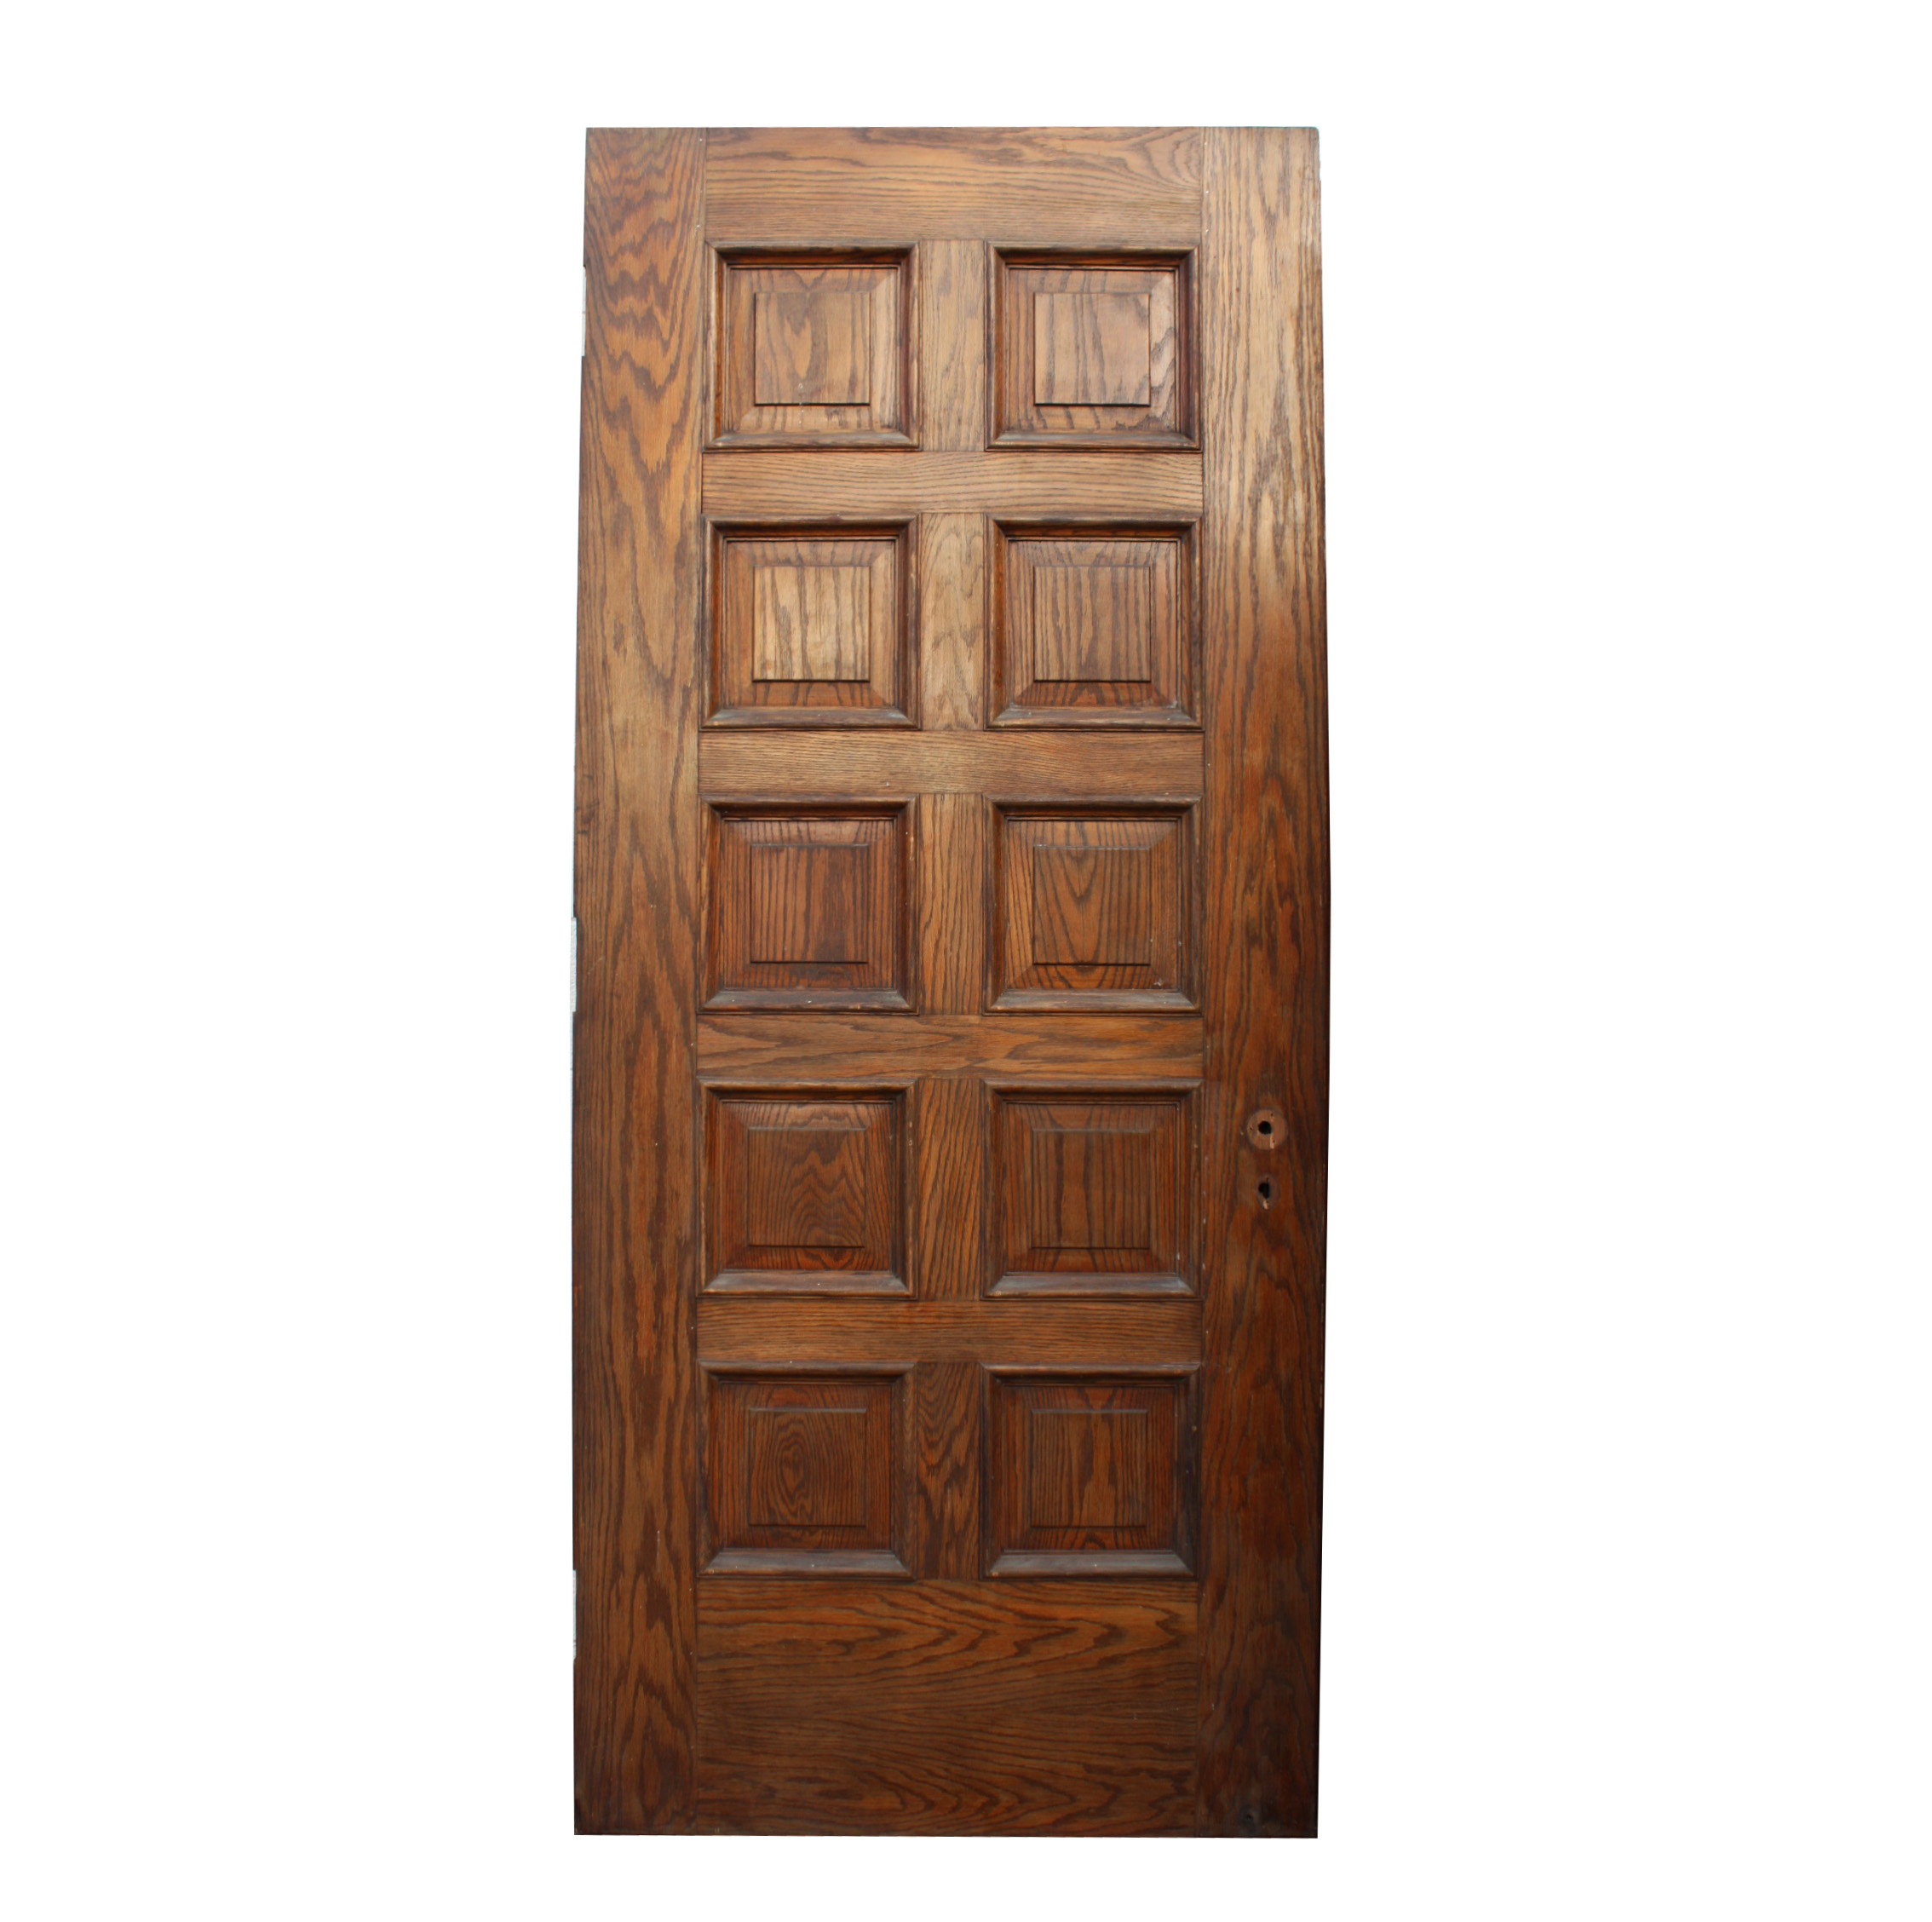 Solid Wood Interior Doors For Sale 2011 Selling